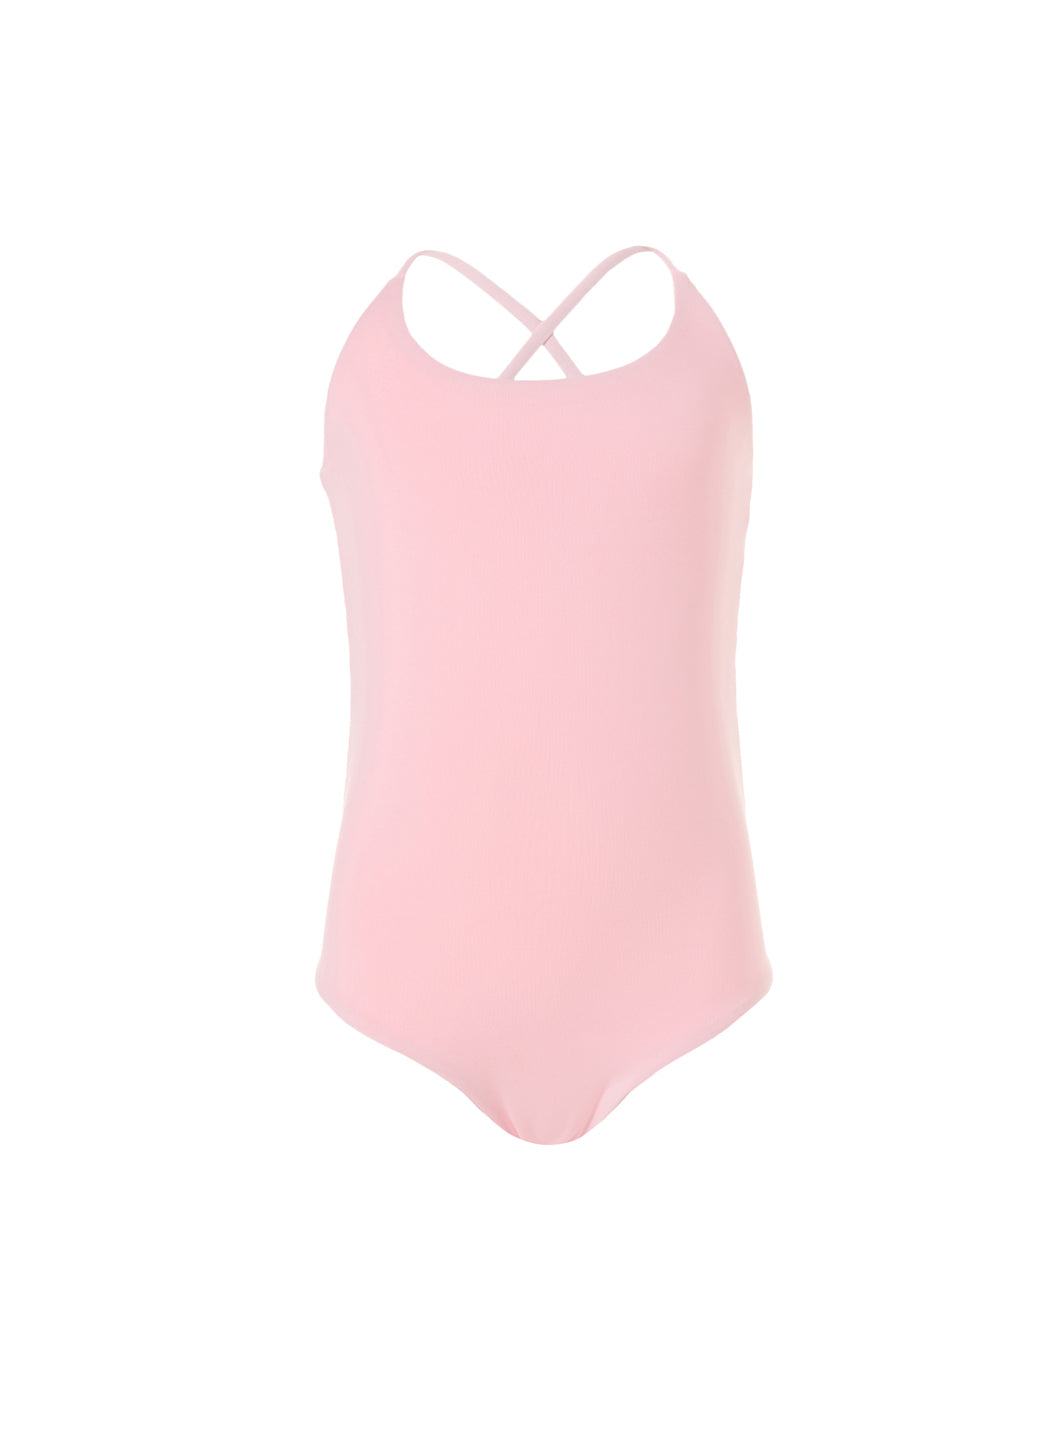 Baby Vicky Pale Pink /Neon Cross-Back One Piece Swimsuit